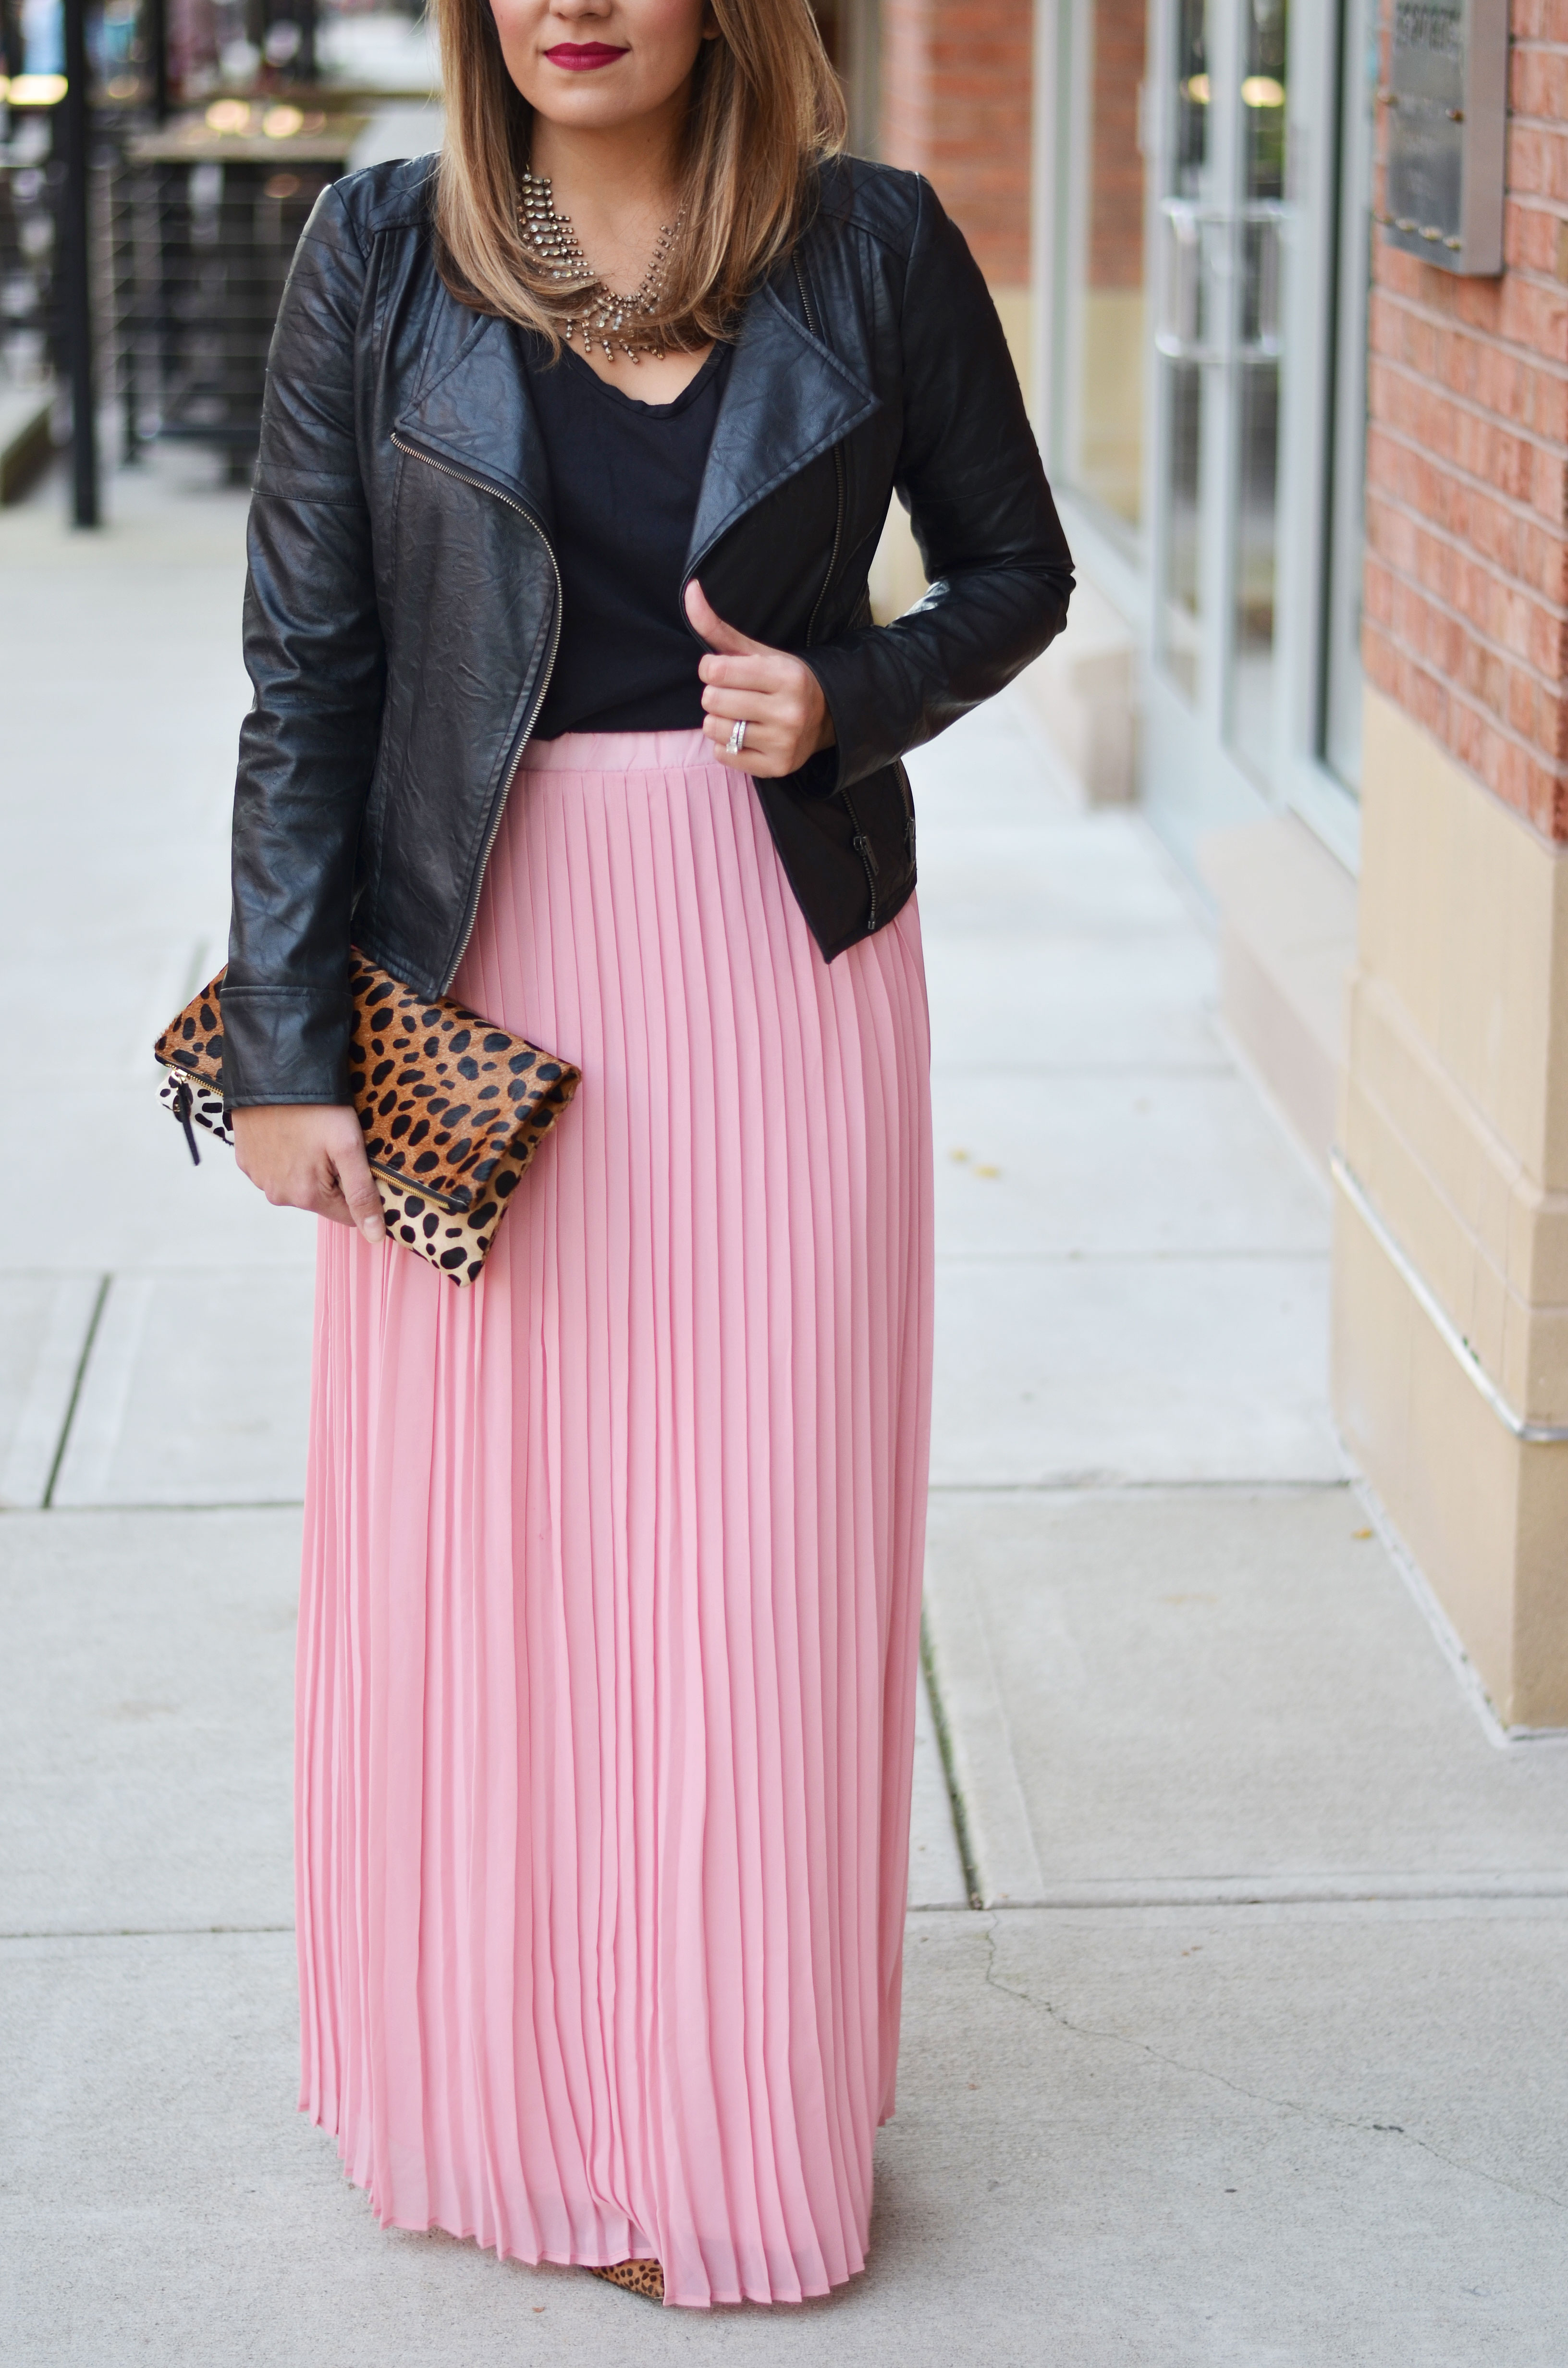 how wear a maxi skirt for winter - pleated maxi skirt with leather moto jacket | www.bylaurenm.com